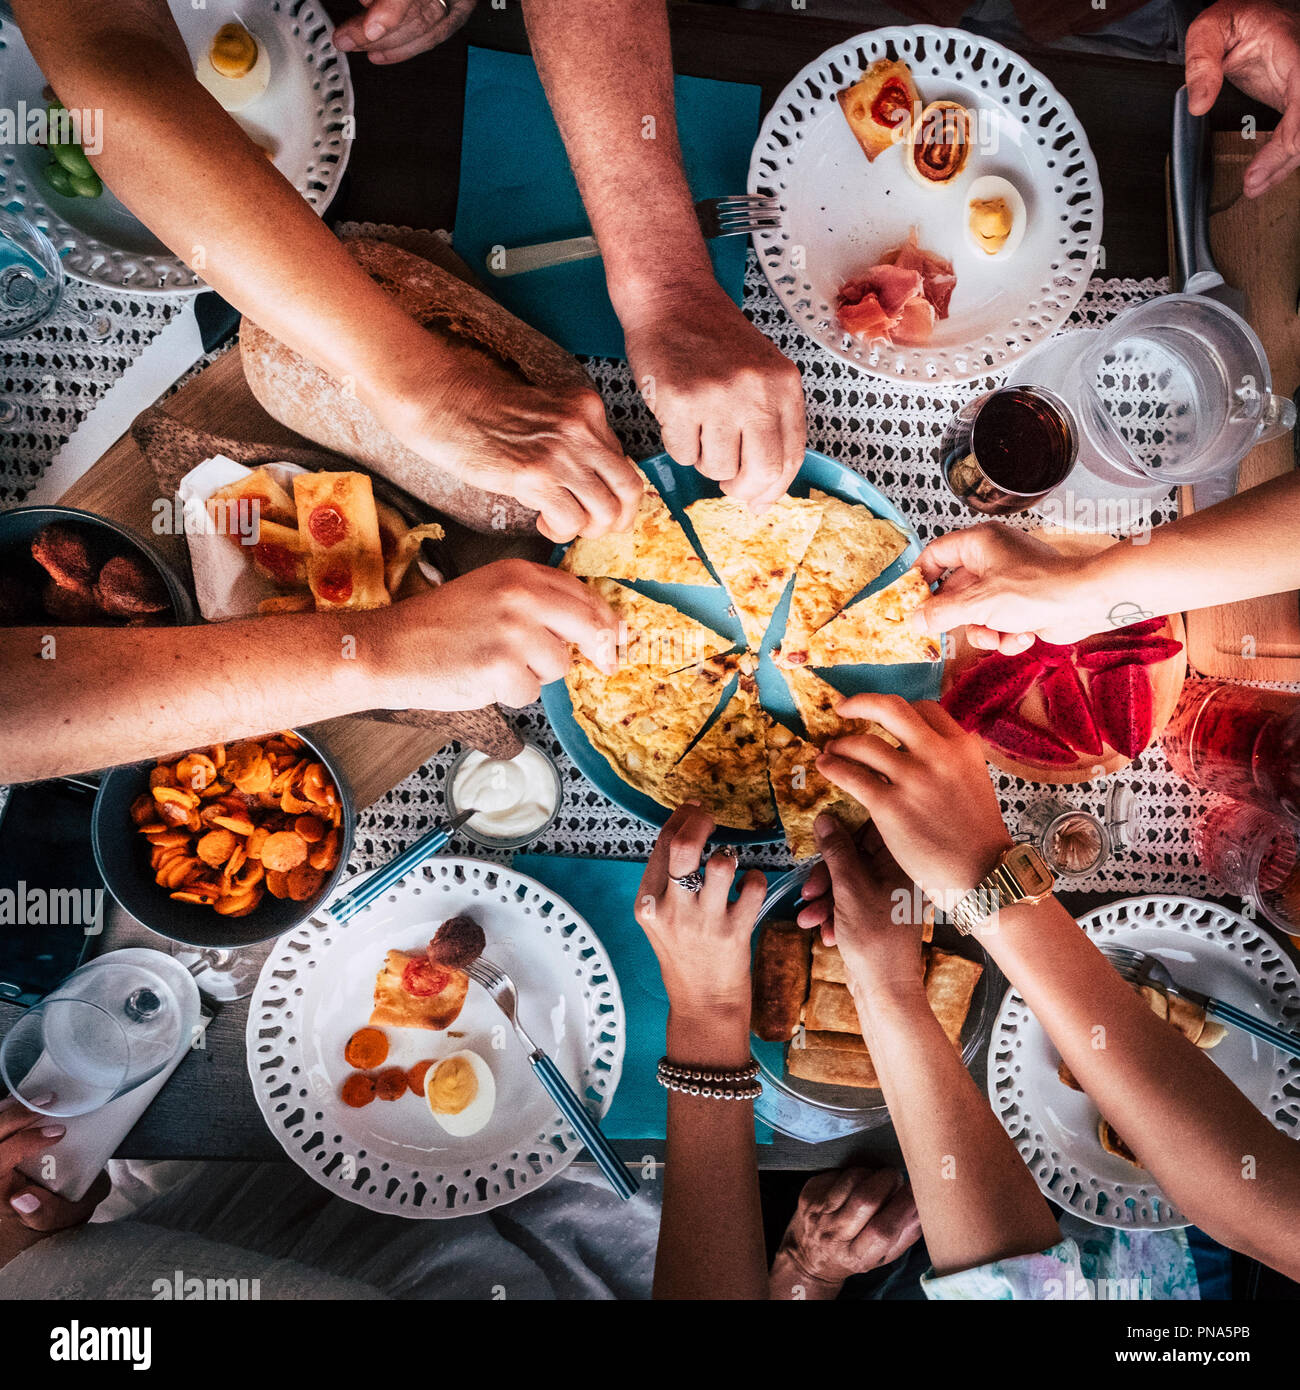 Aerial view from above for table and hands and a lot of food and drinks. celebration and party event concept image. all hands taking from the same pla - Stock Image